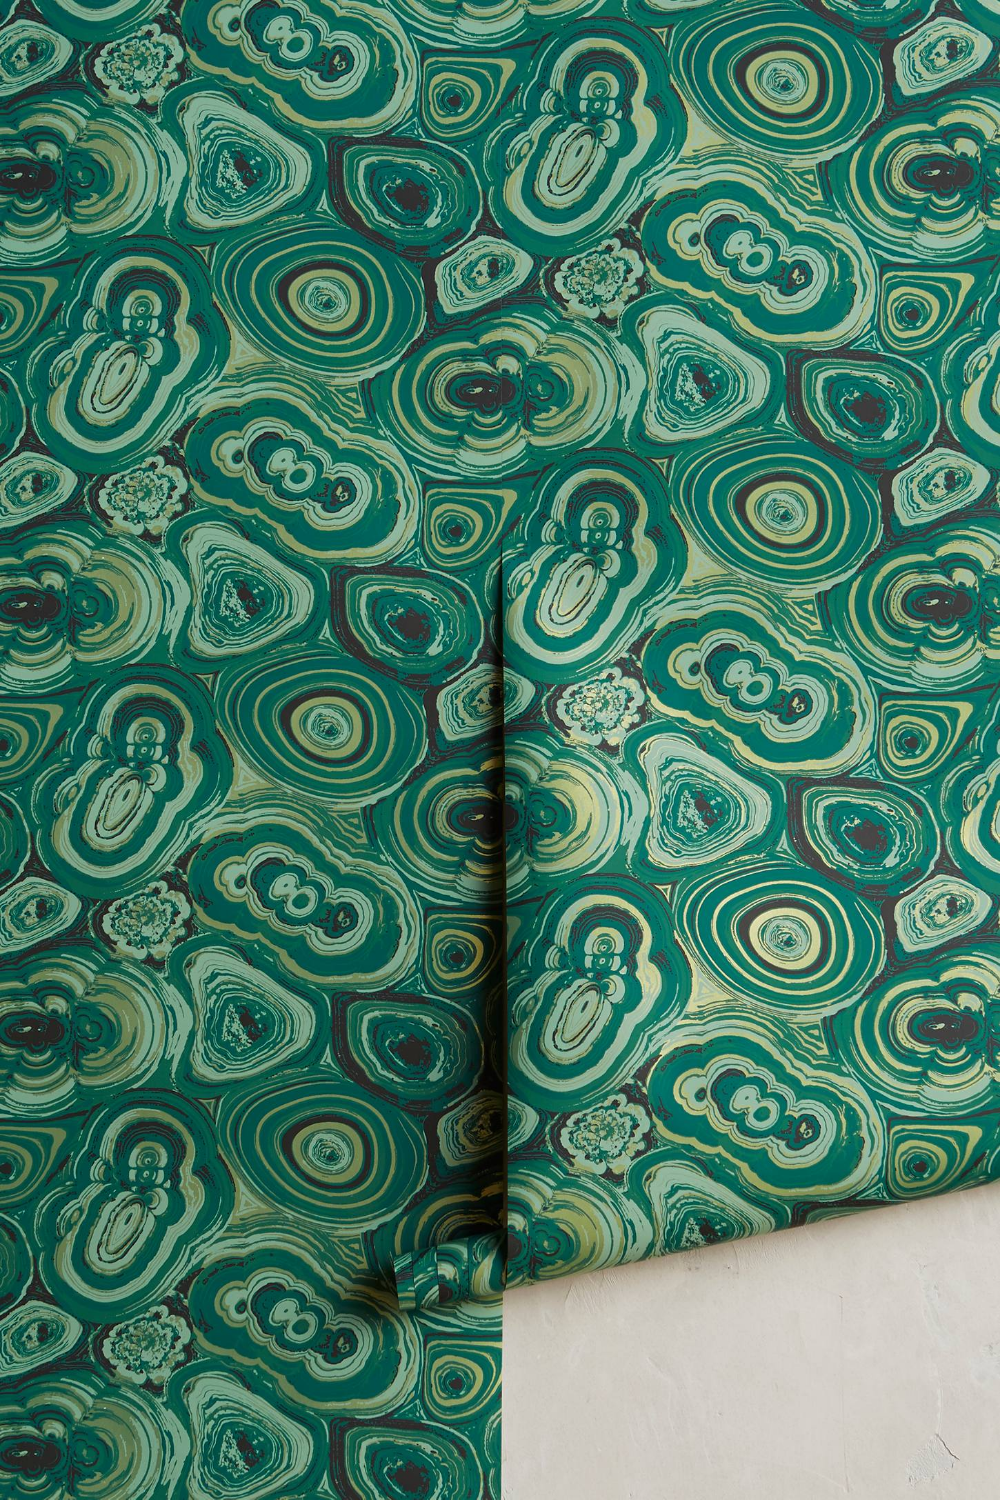 Malachite Wallpaper By Anthropologie In Green Wall Decor Malachite Wallpaper Wallpaper Manufacturers Home Wallpaper